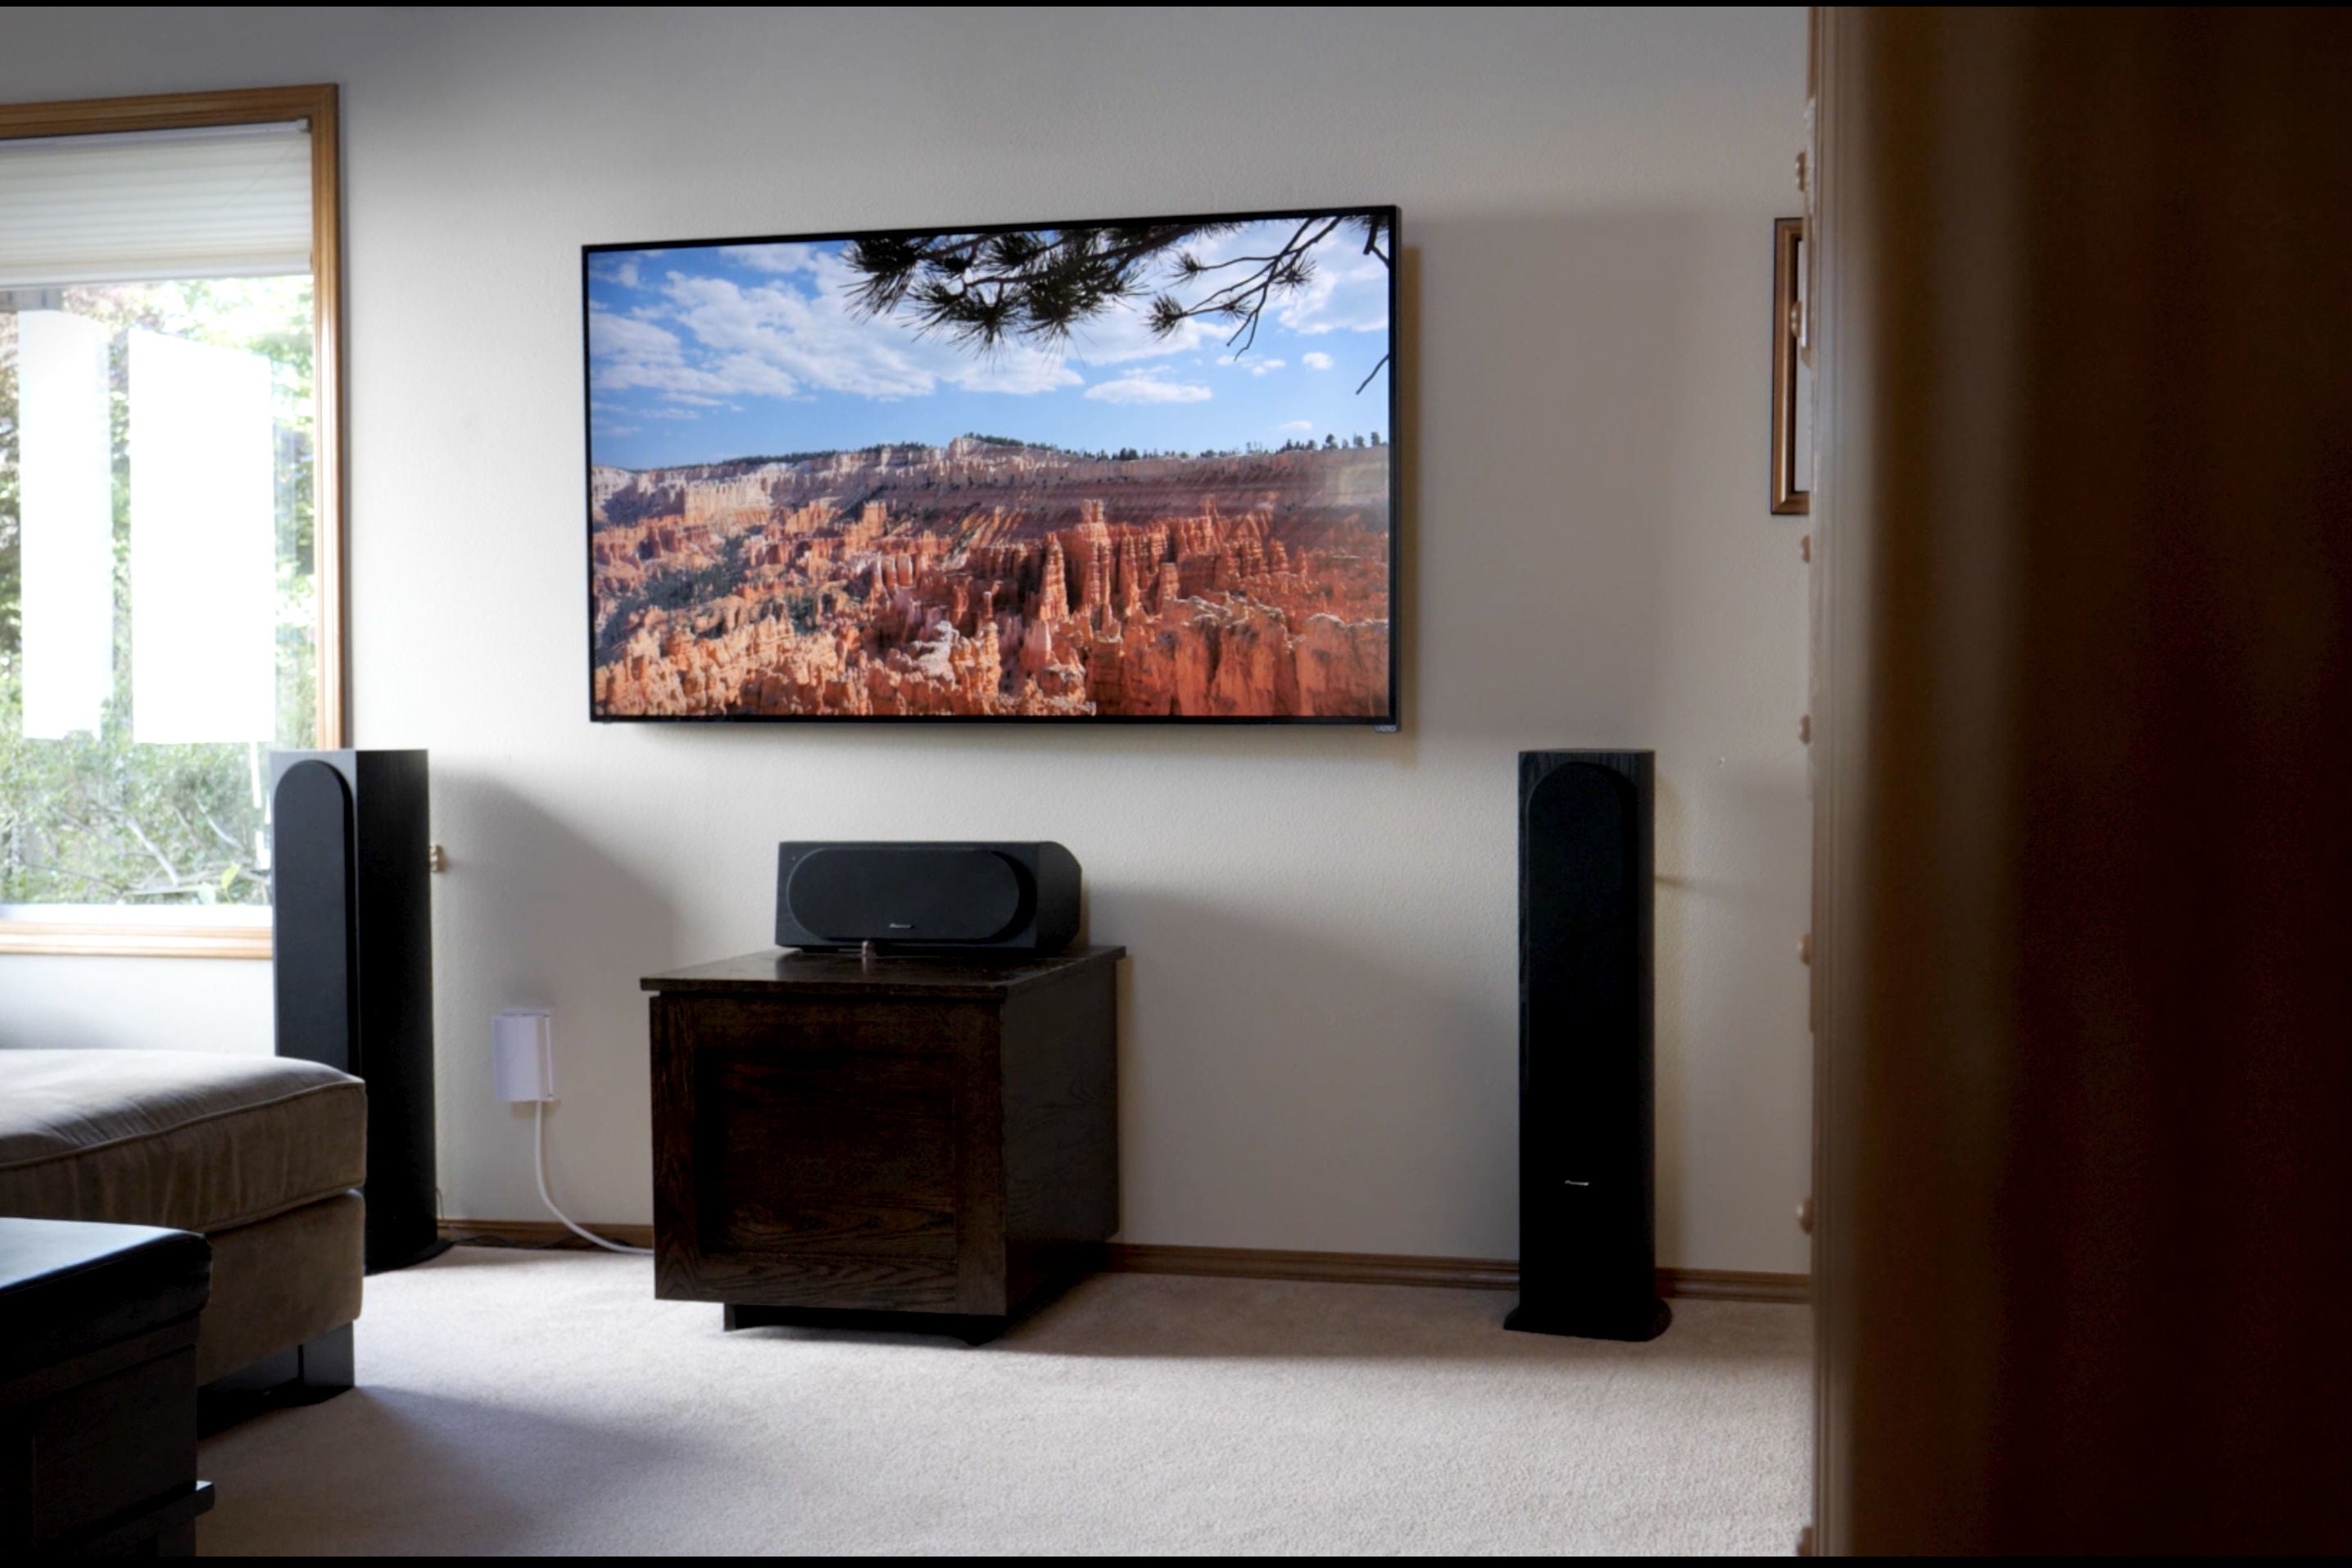 Top 3 Best 55 Inch TV Under 600 For 2018 2019